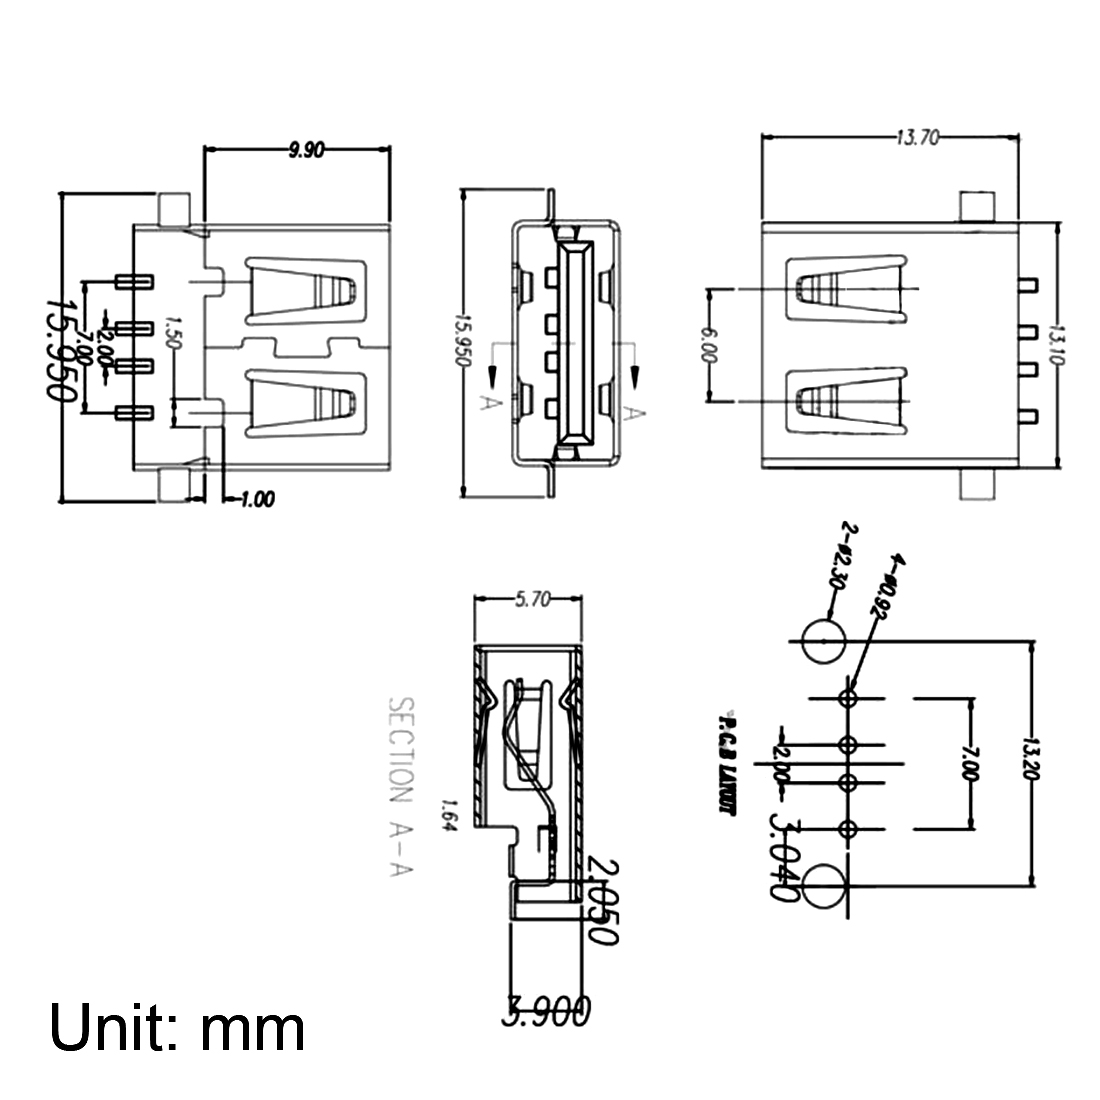 PCB USB Connector Type-A Female Jack 180 Degree SMT SMD 20pcs - image 3 of 4